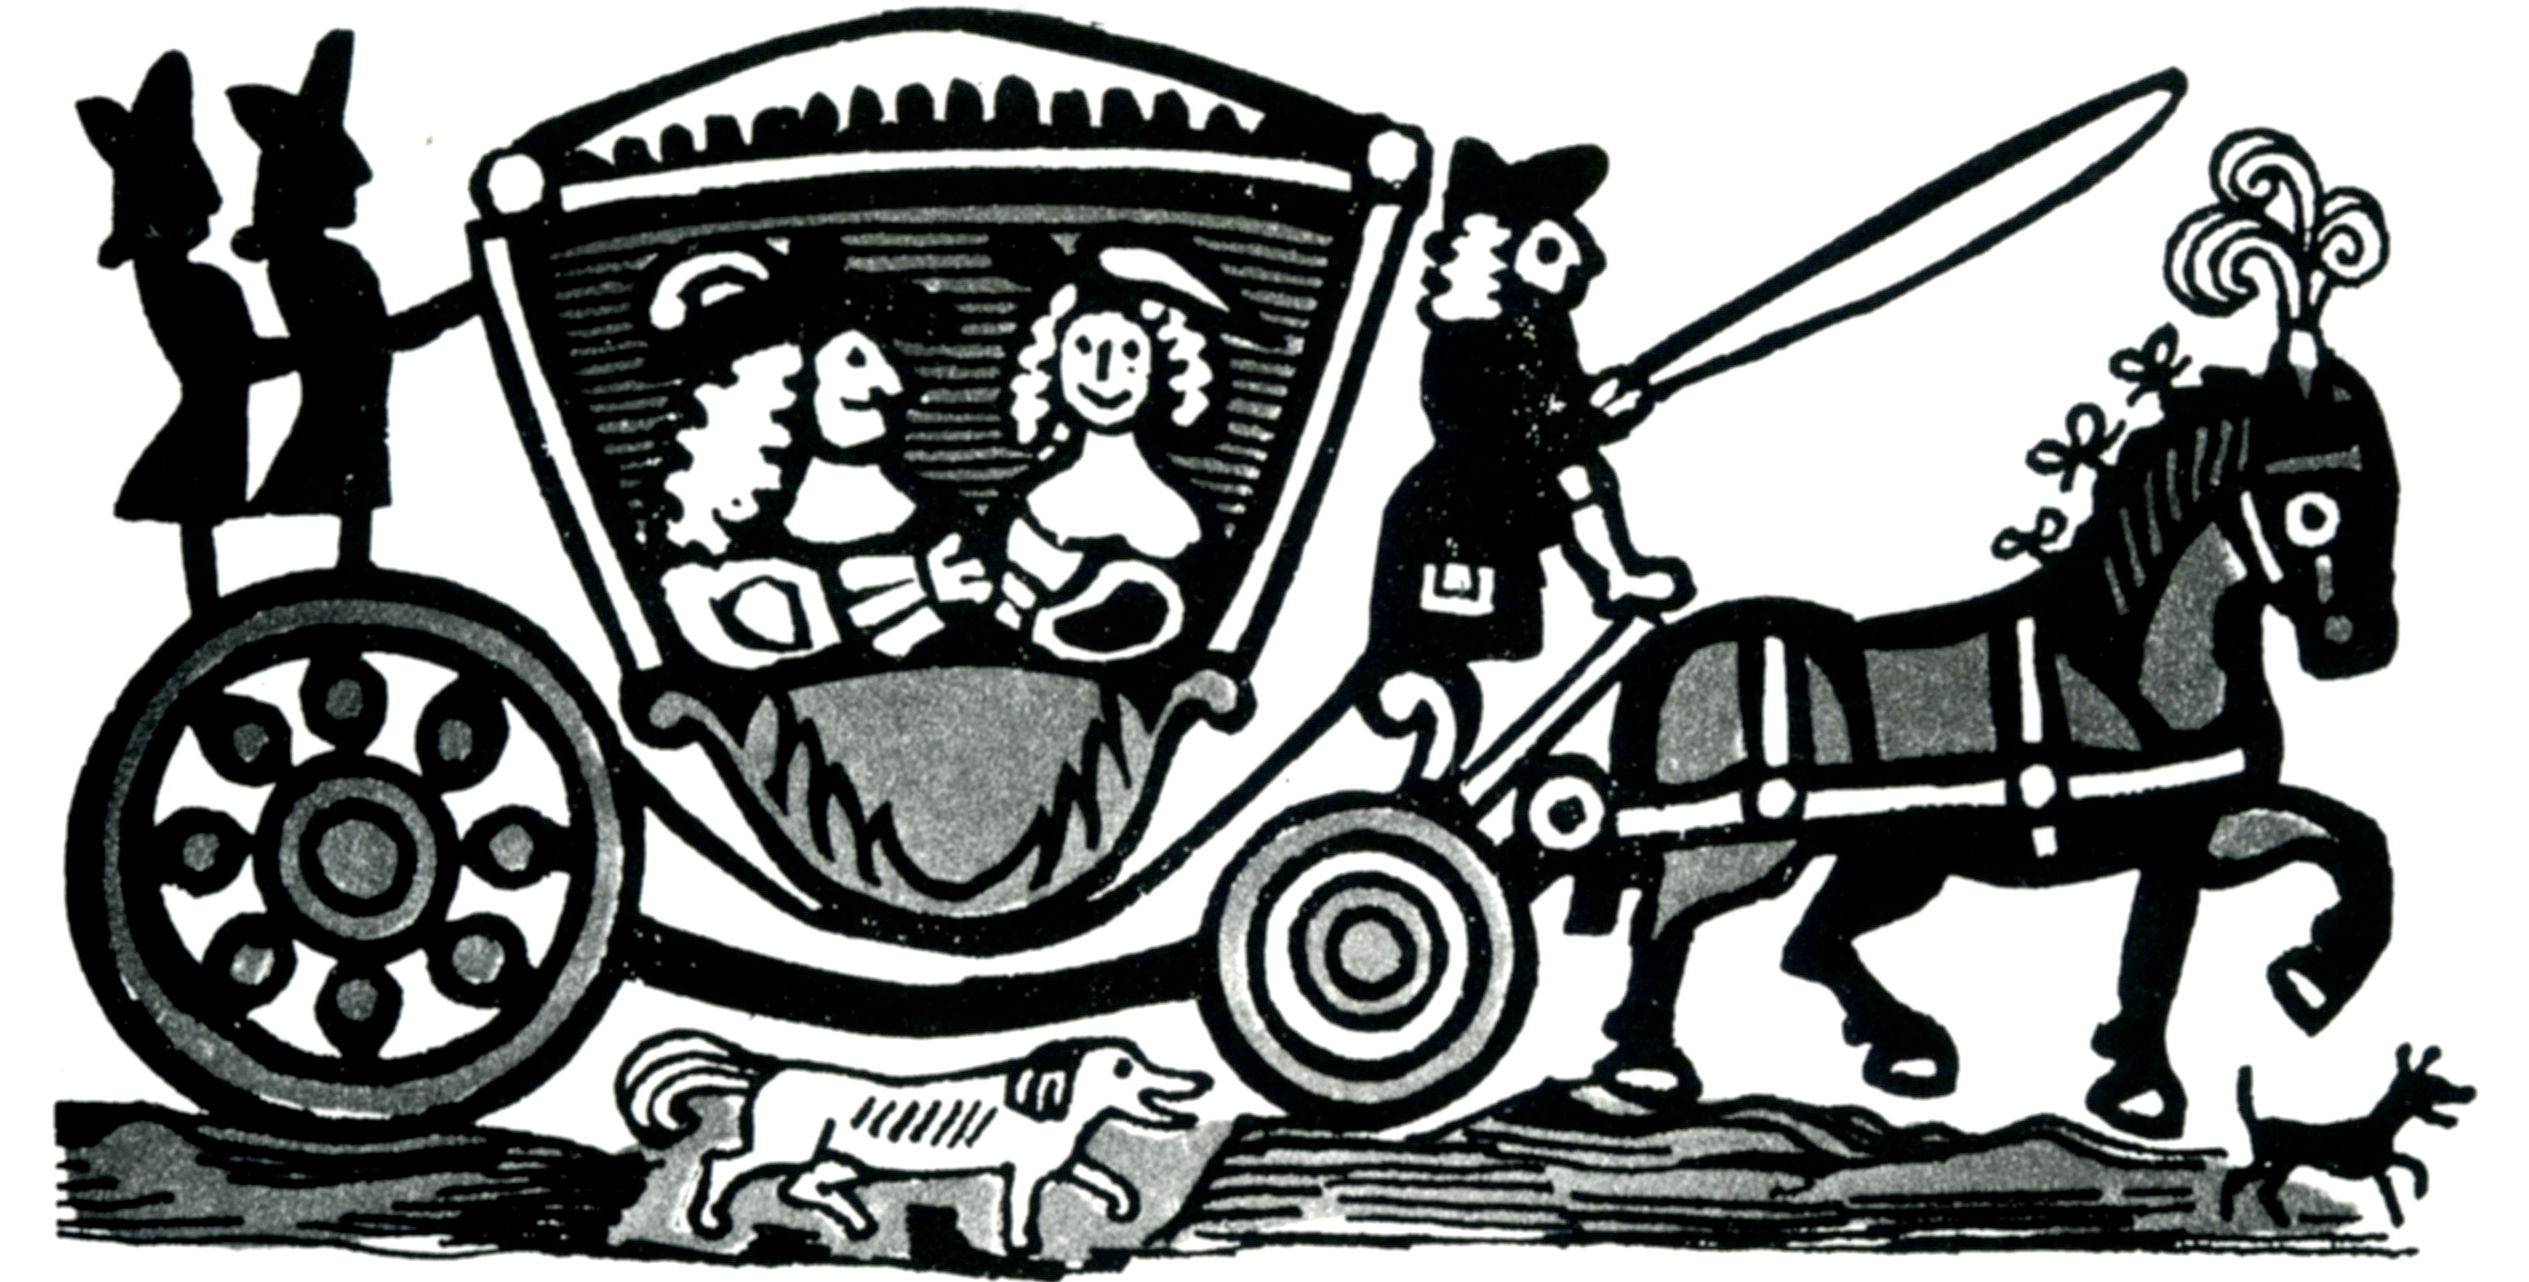 edward_bawden-graphic-designer-engraved-horses-car